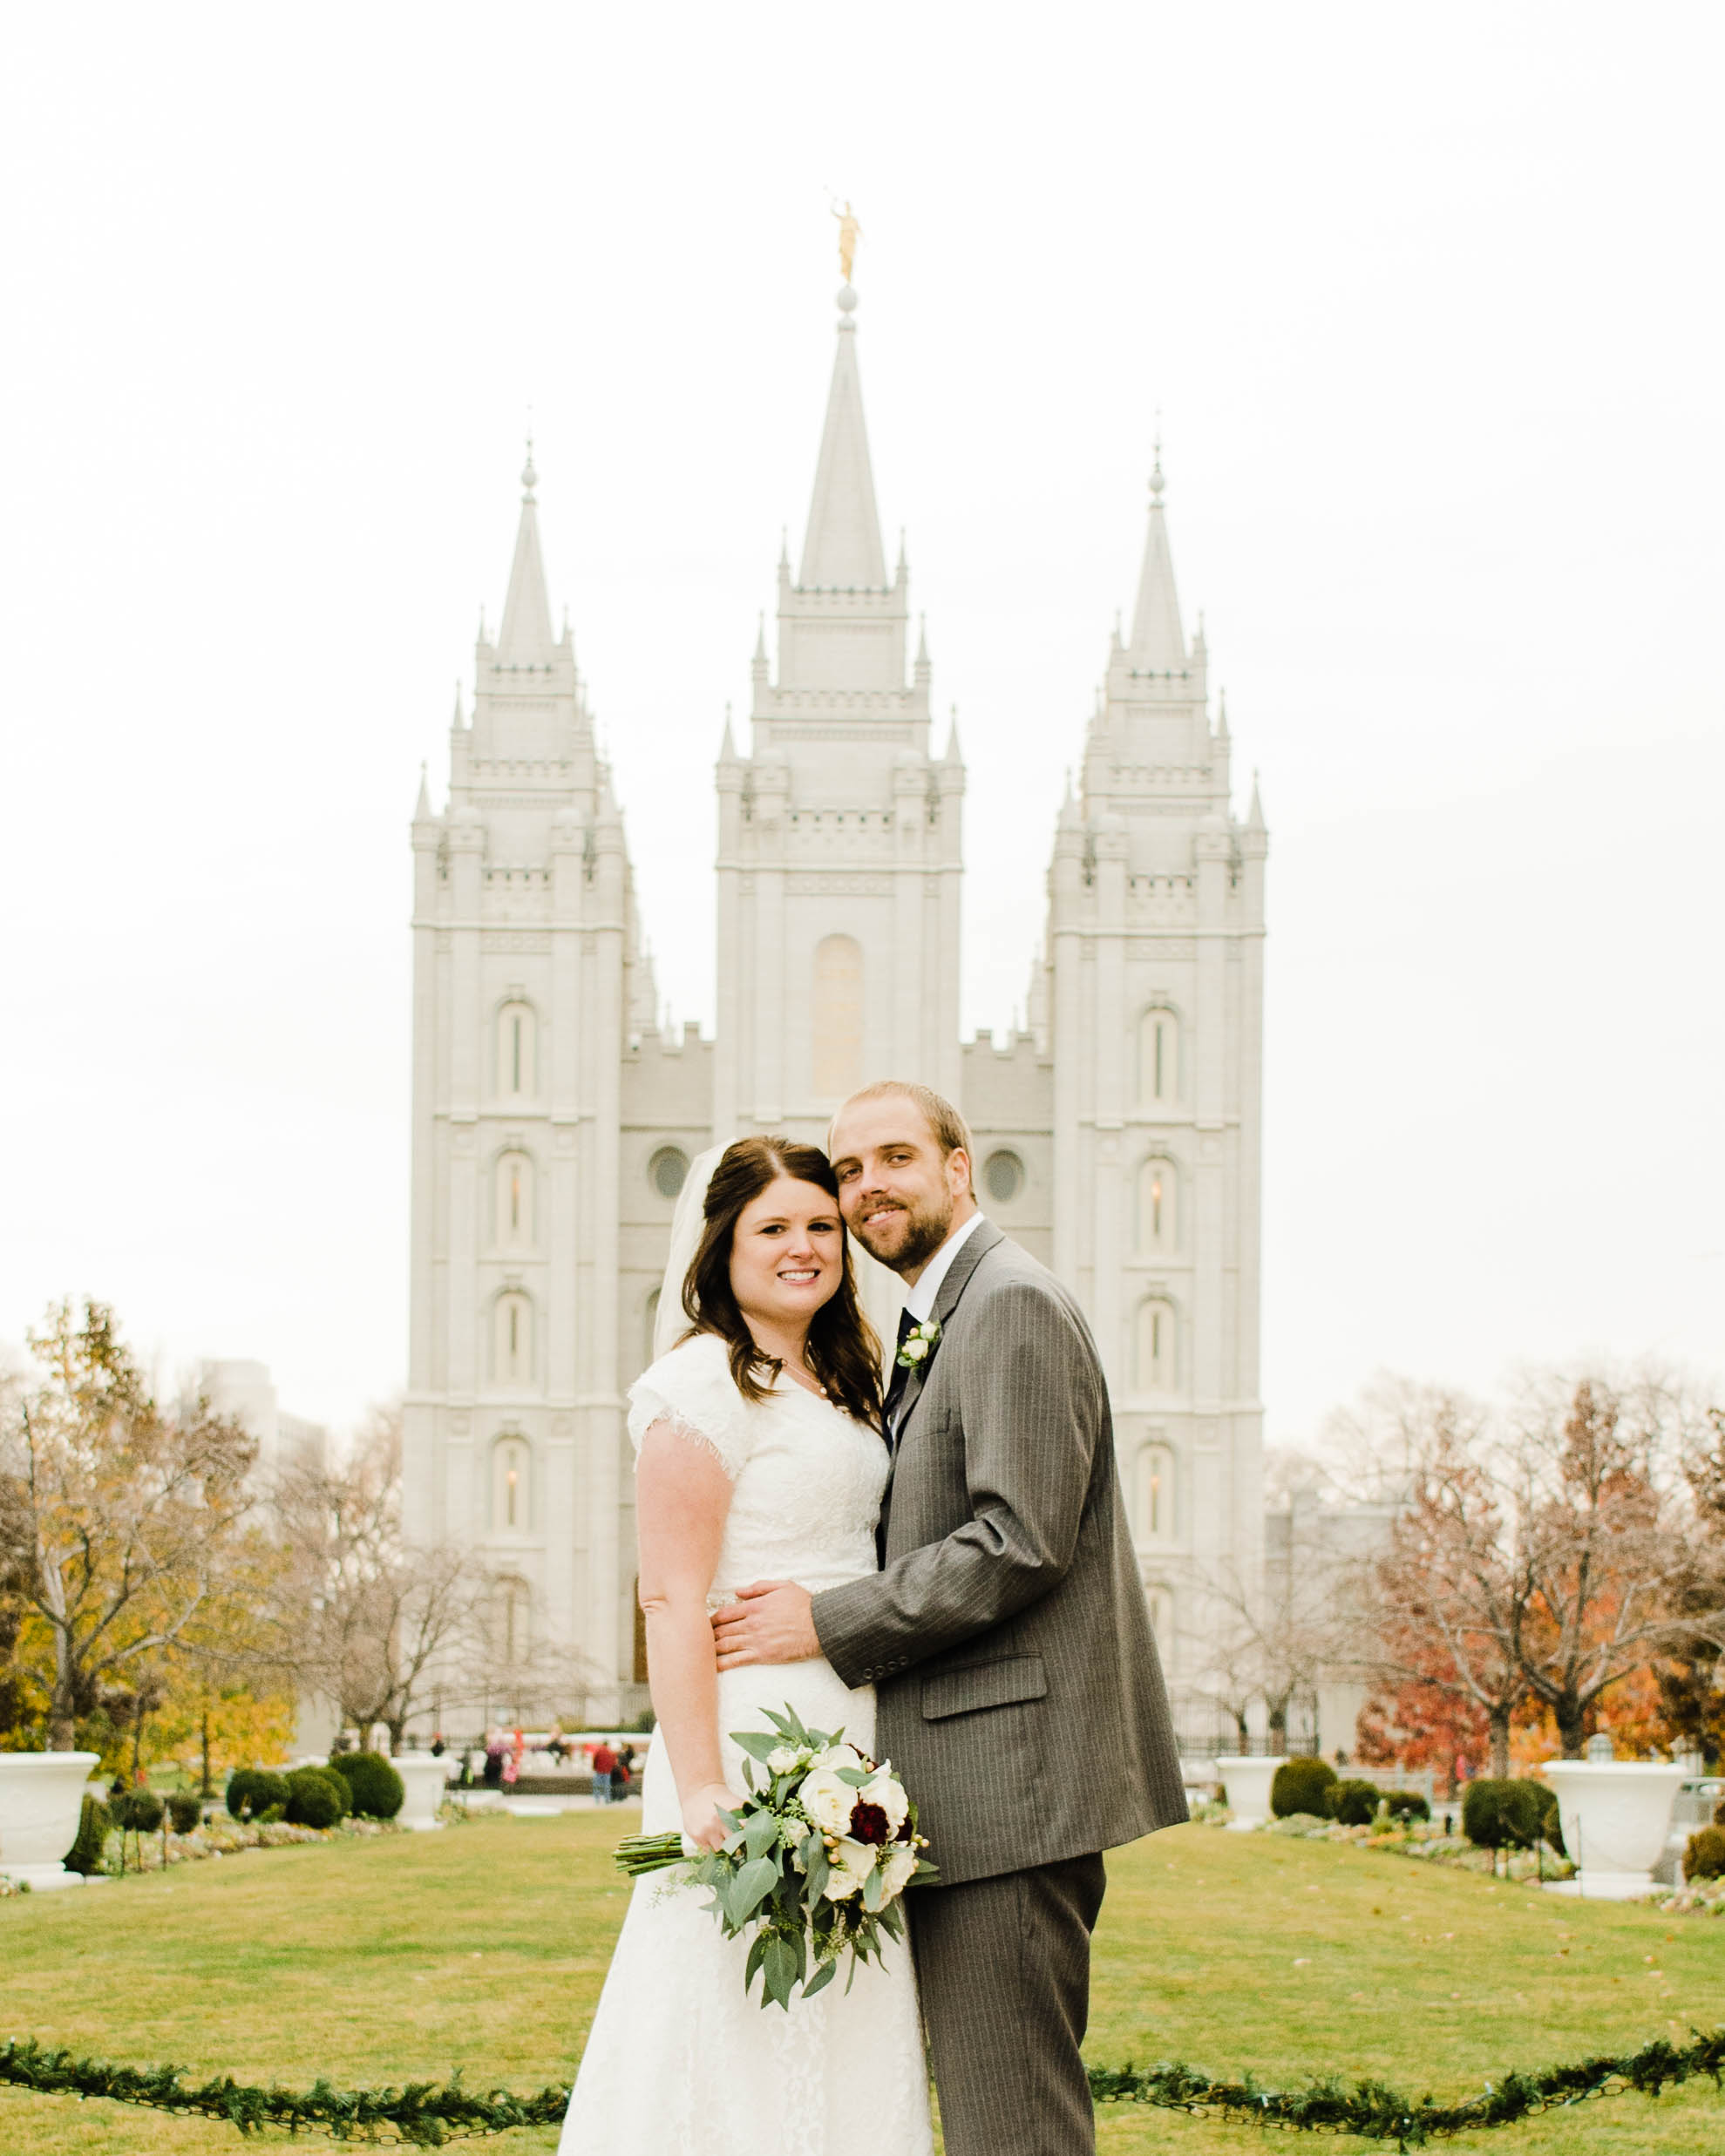 LINDSAY+BRAD-BRIDALS-Sadie_Banks_Photography-145.jpg